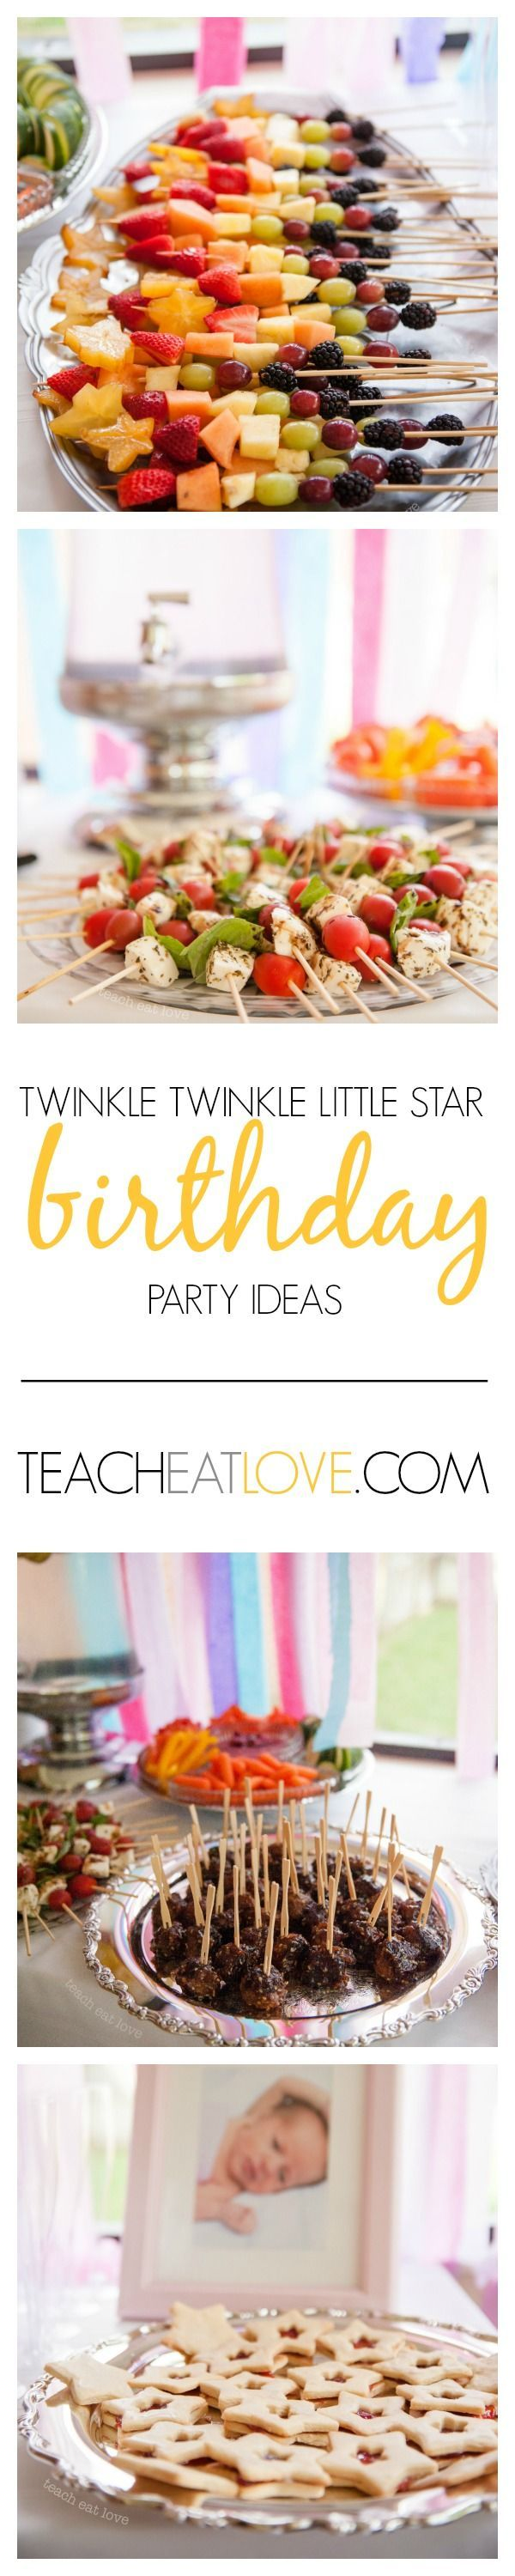 Twinkle Twinkle Little Star - birthday party food ideas for baby's birthday. Beautiful, fresh, and colorful. #firstbirthday